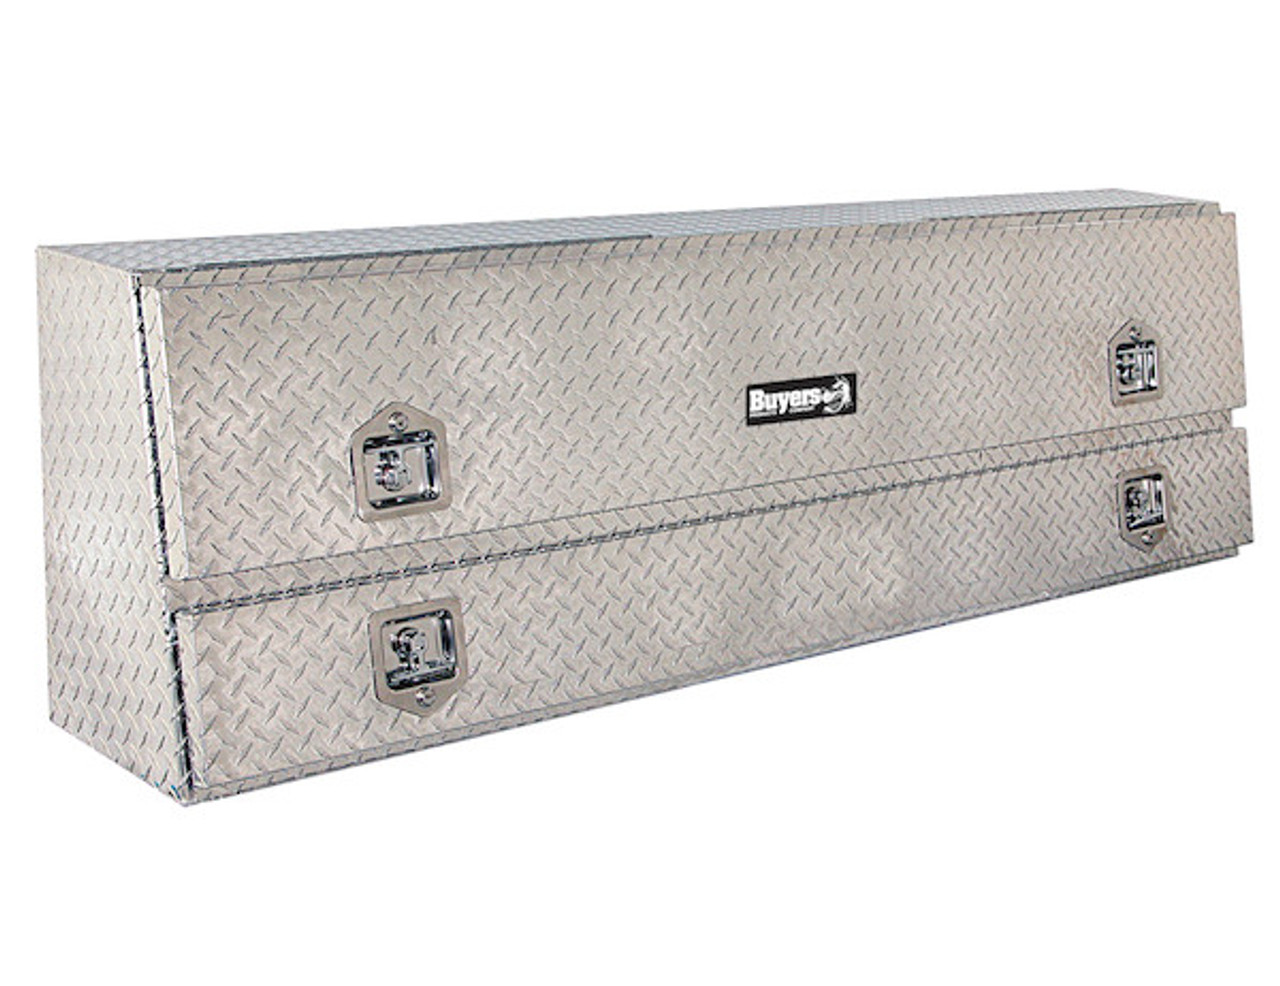 "1705640 BUYERS PRODUCTS DIAMOND TREAD ALUMINUM CONTRACTOR TRUCK TOOLBOX 21""HX13.5""DX72""W"